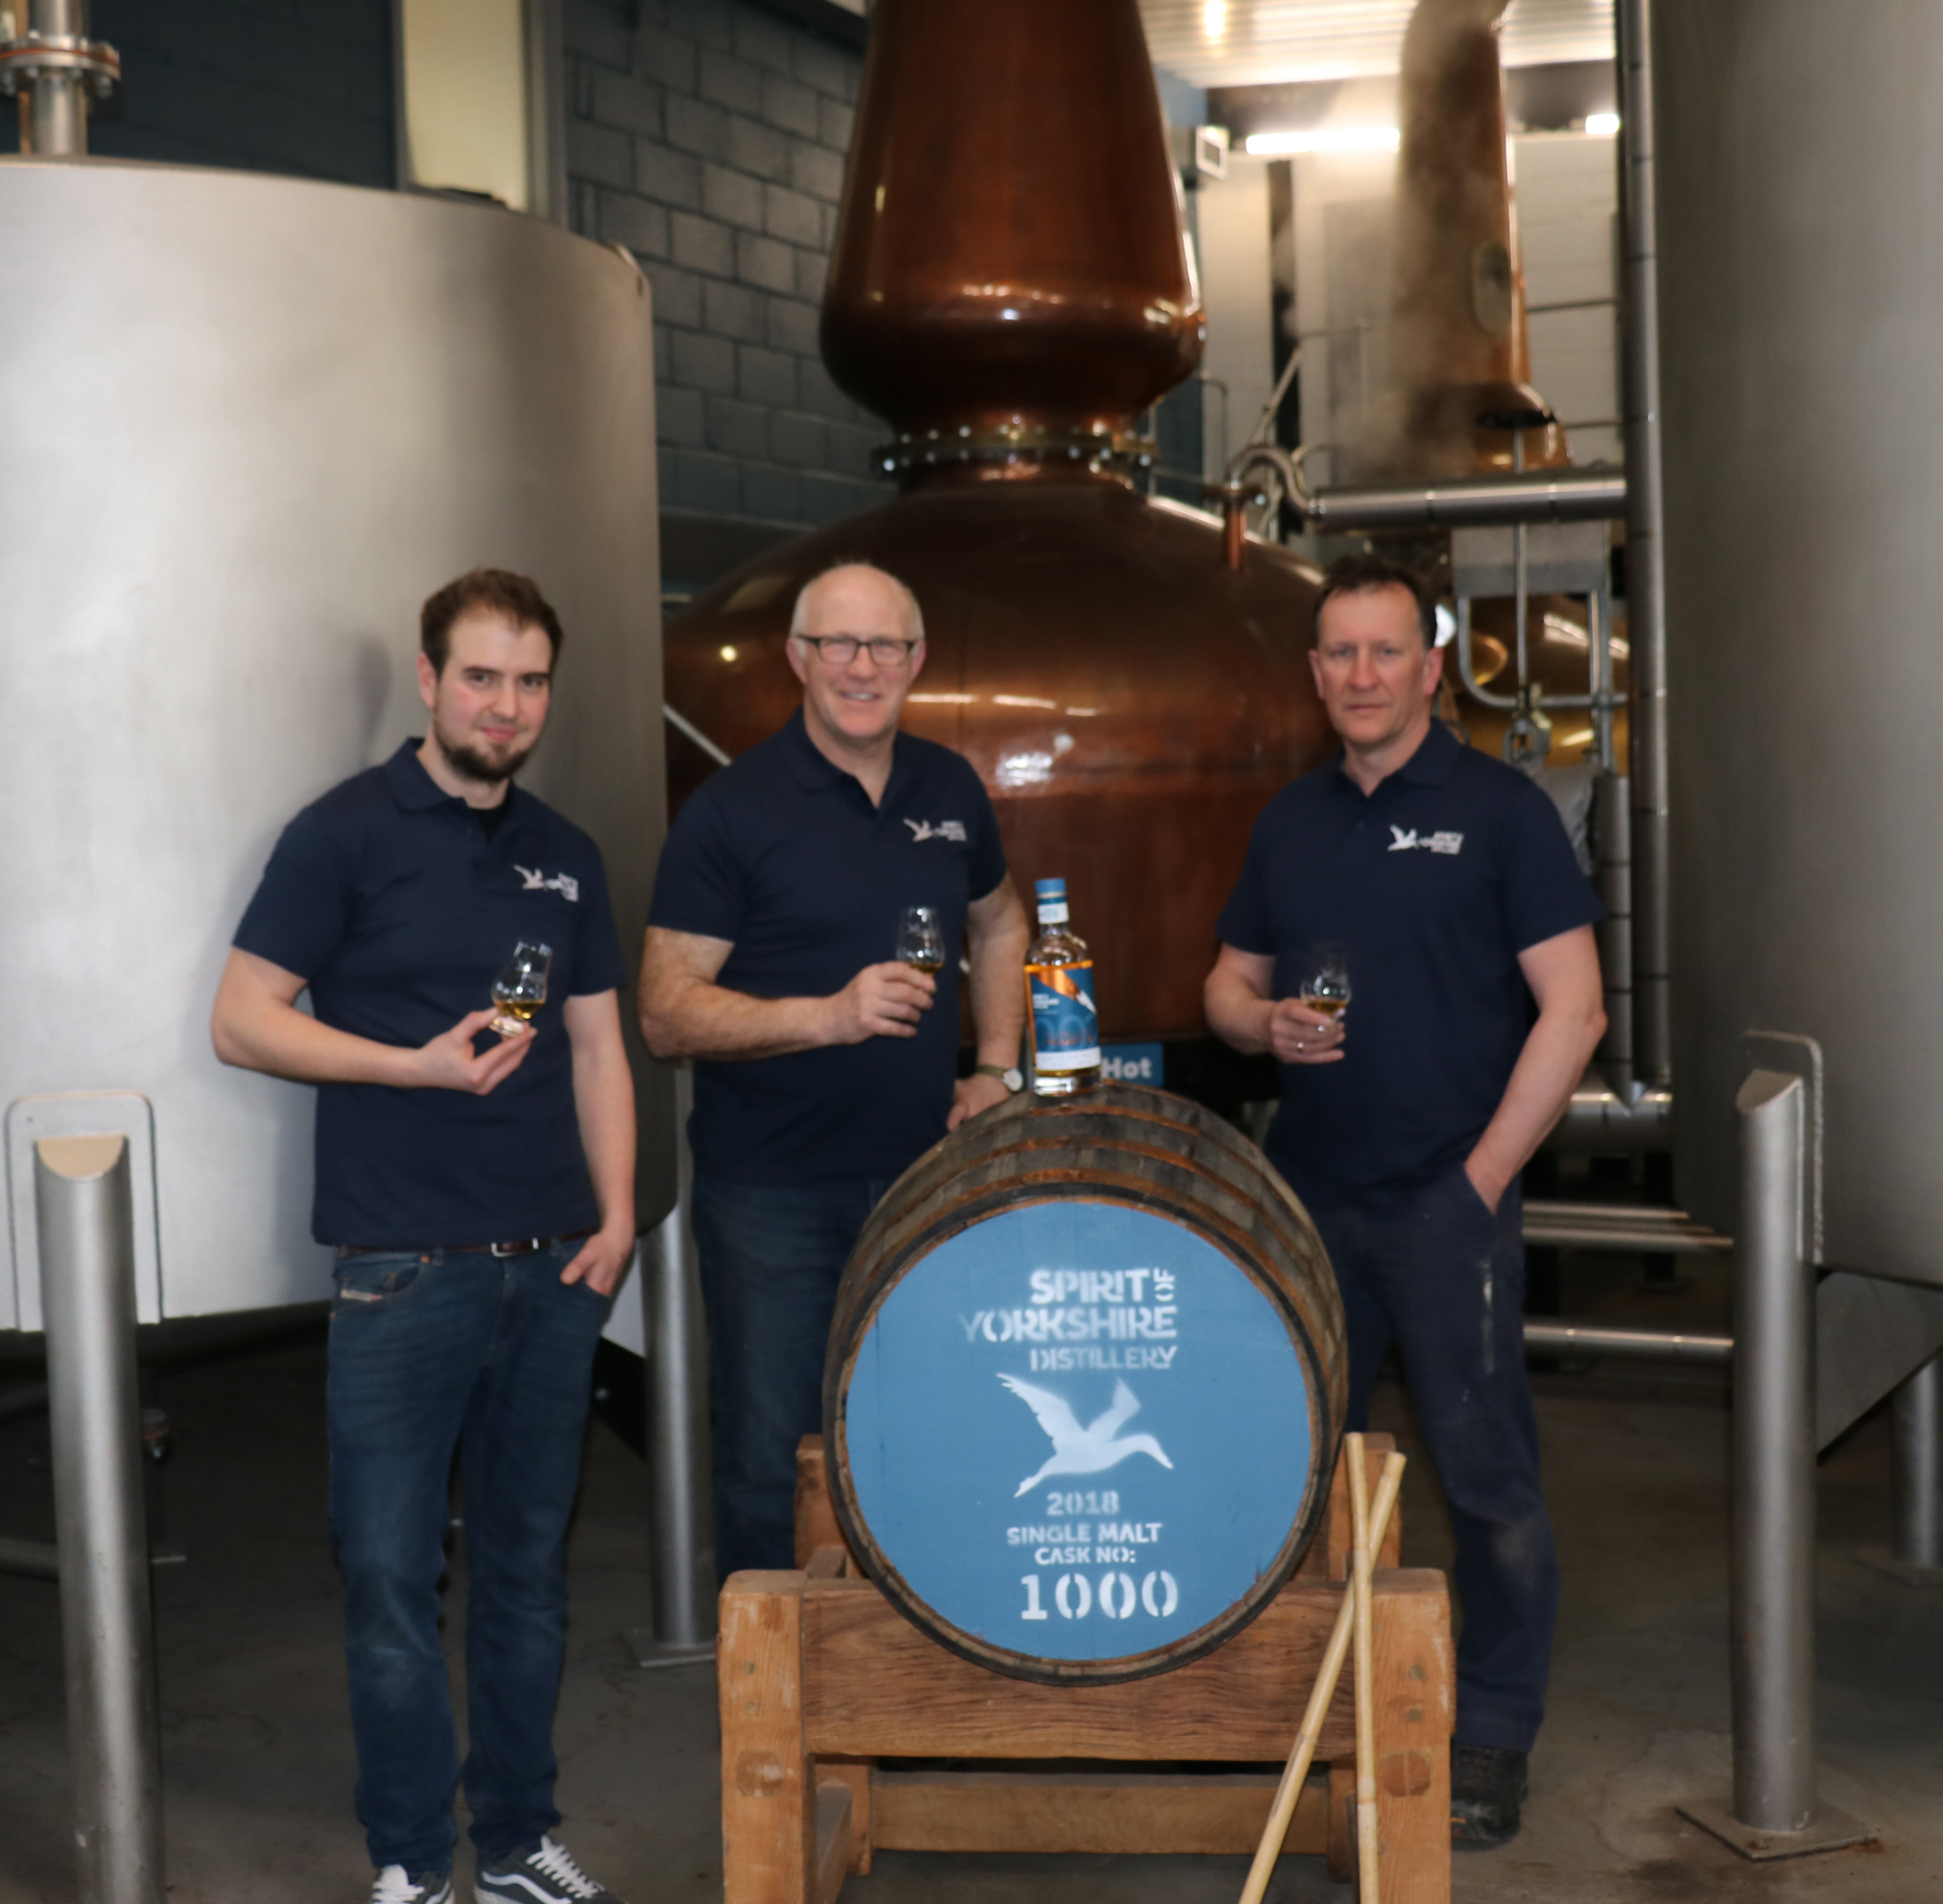 From left, Joe Clark, Tom Mellor and David Thompson from the Spirit of Yorkshire distillery